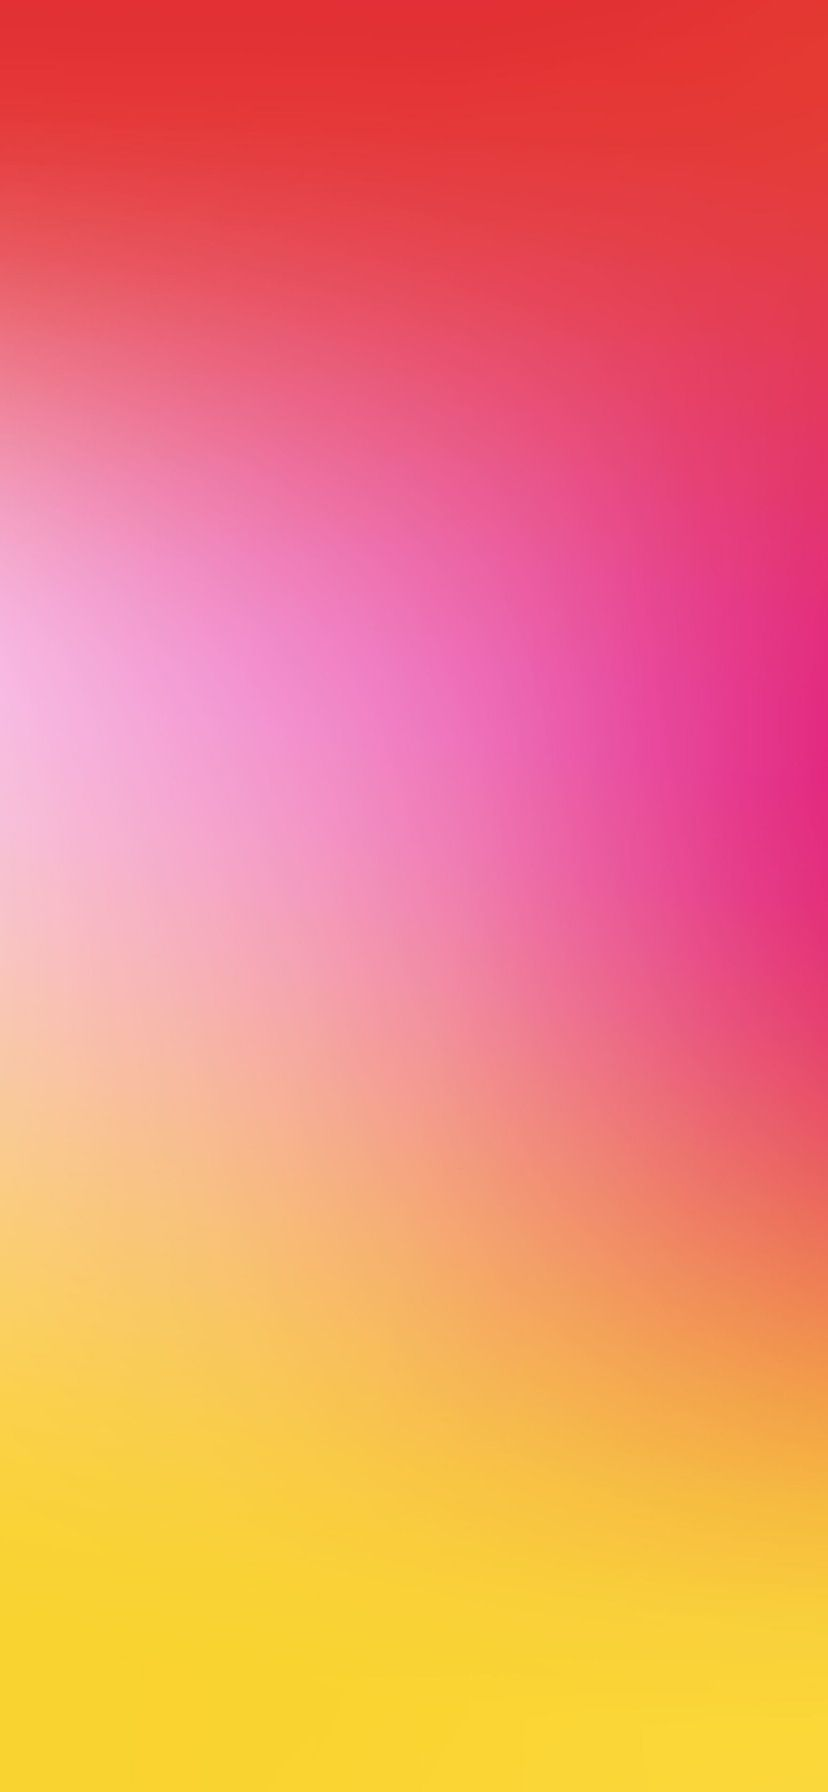 Iphone Xr Colors Wallpapers Top Free Iphone Xr Colors